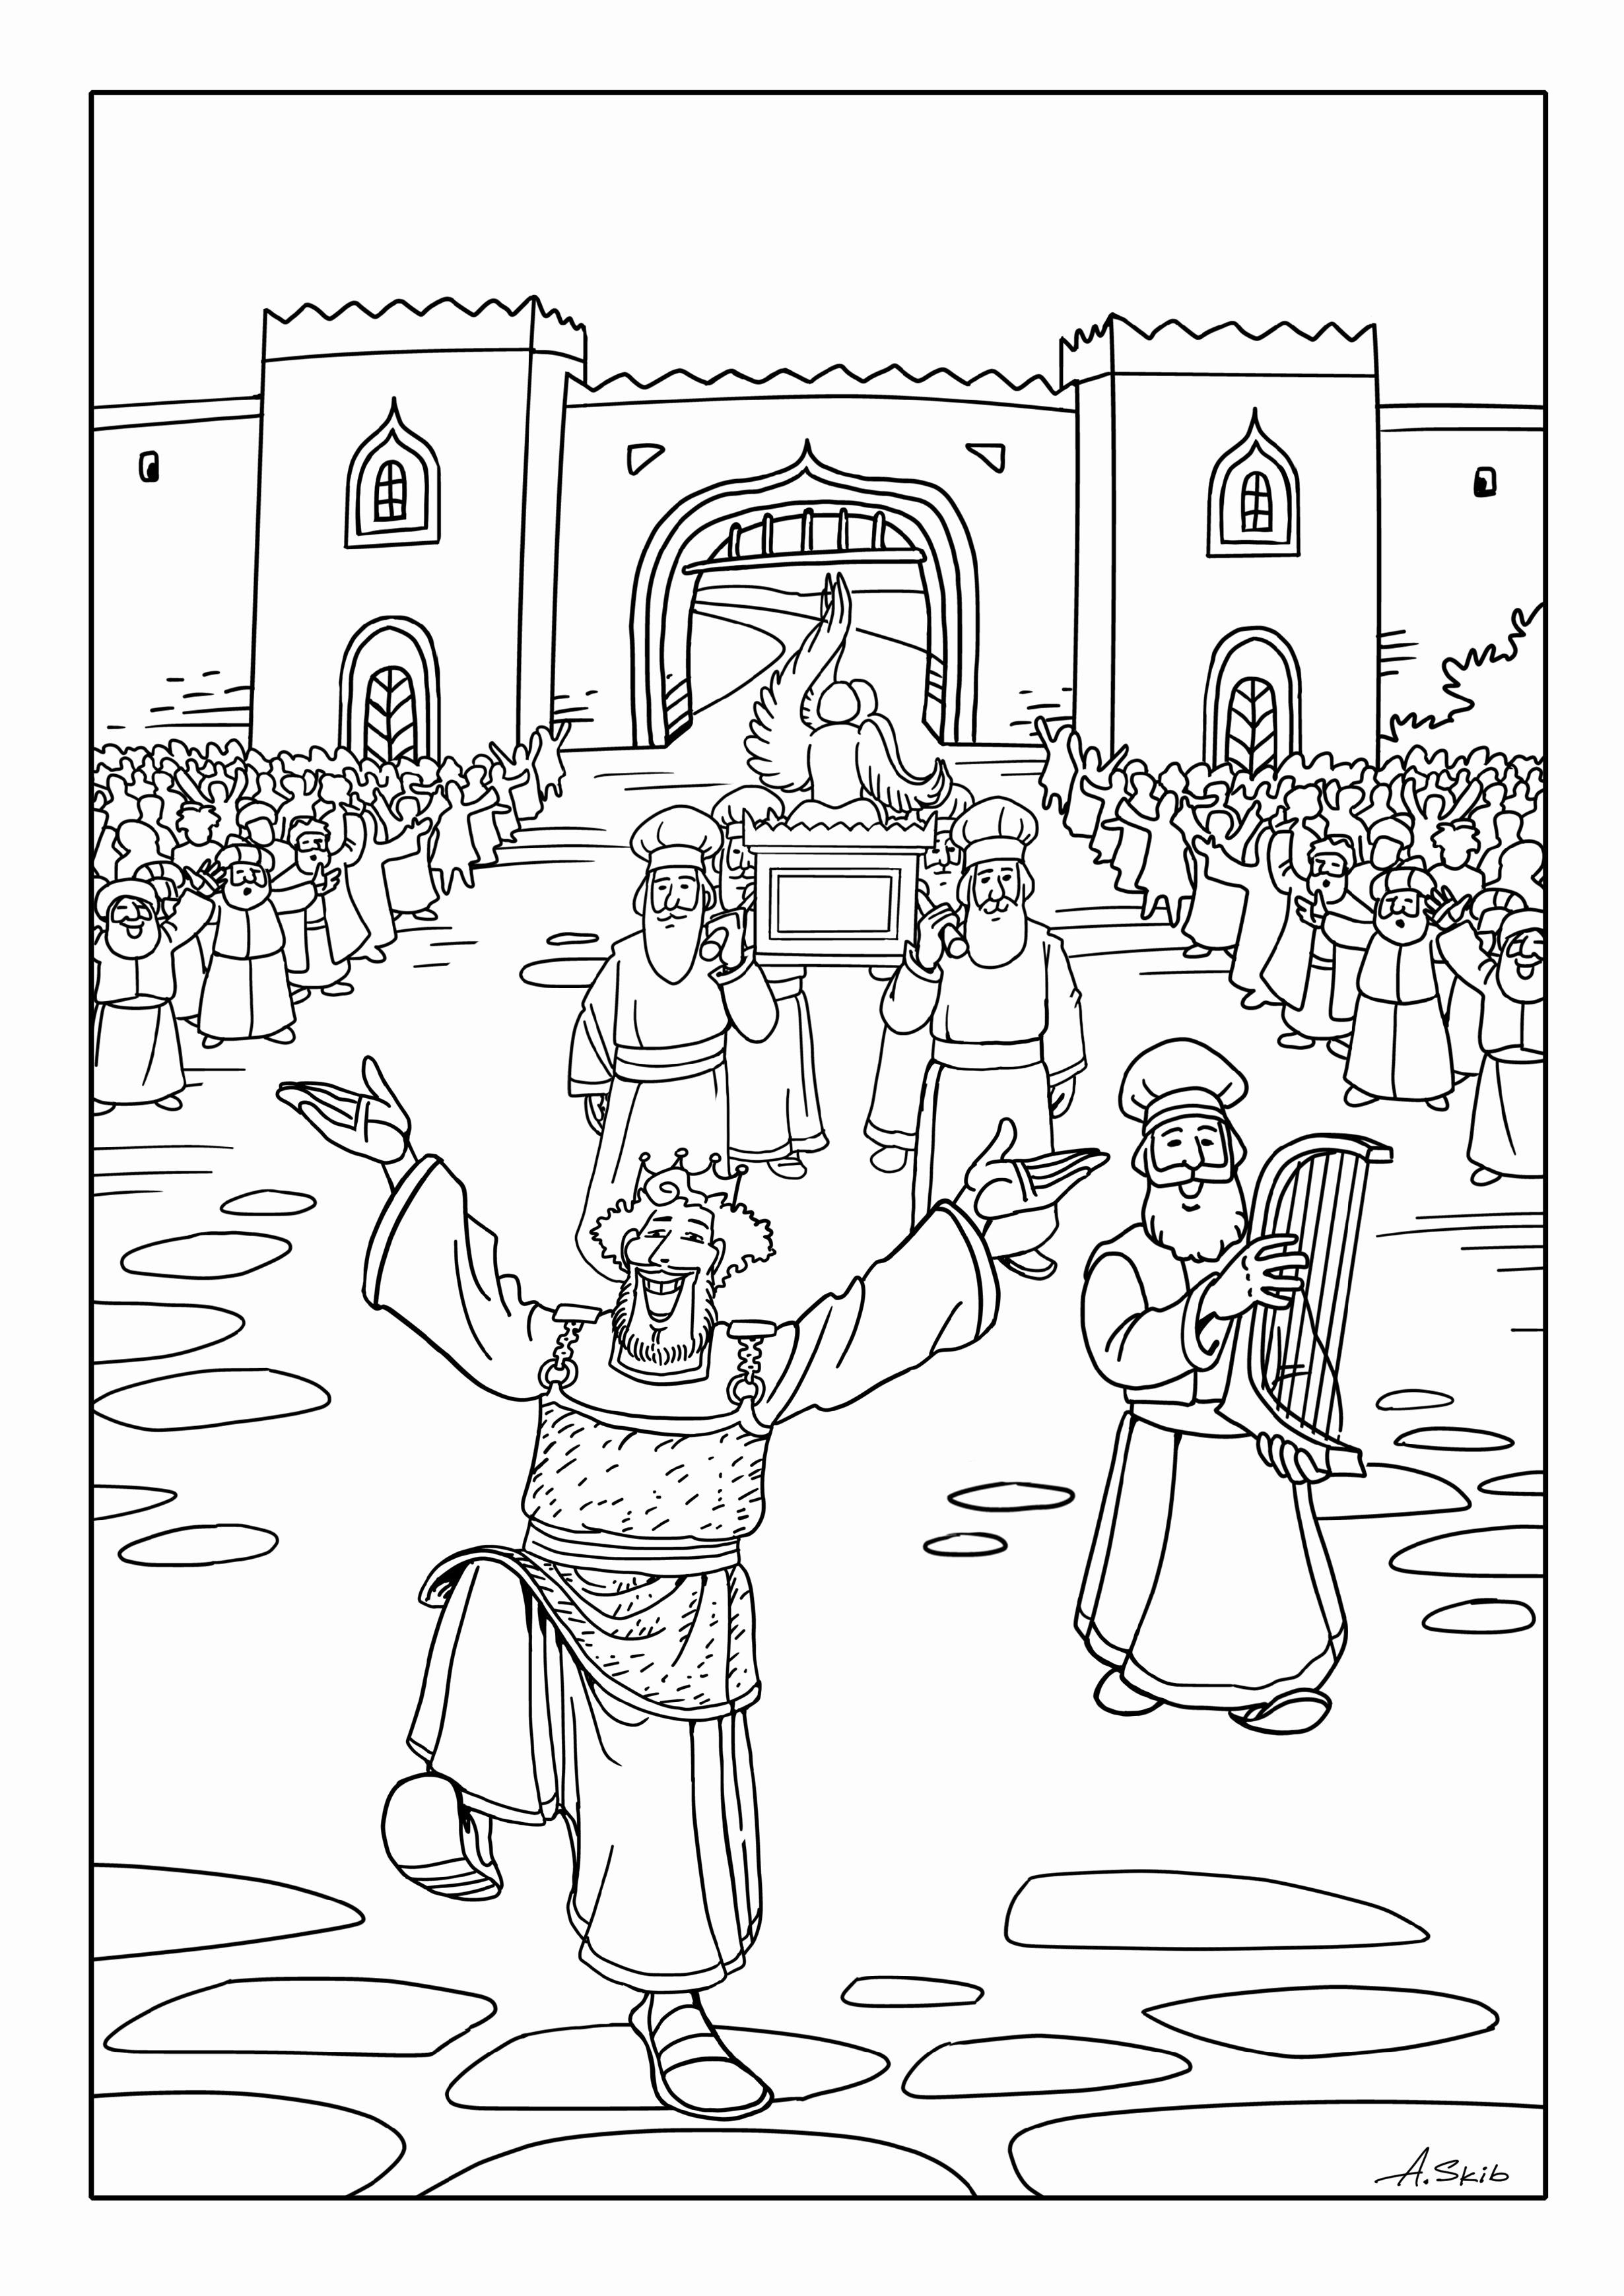 ark of the covenant coloring page ark of the covenant free coloring pages coloring the page covenant of ark